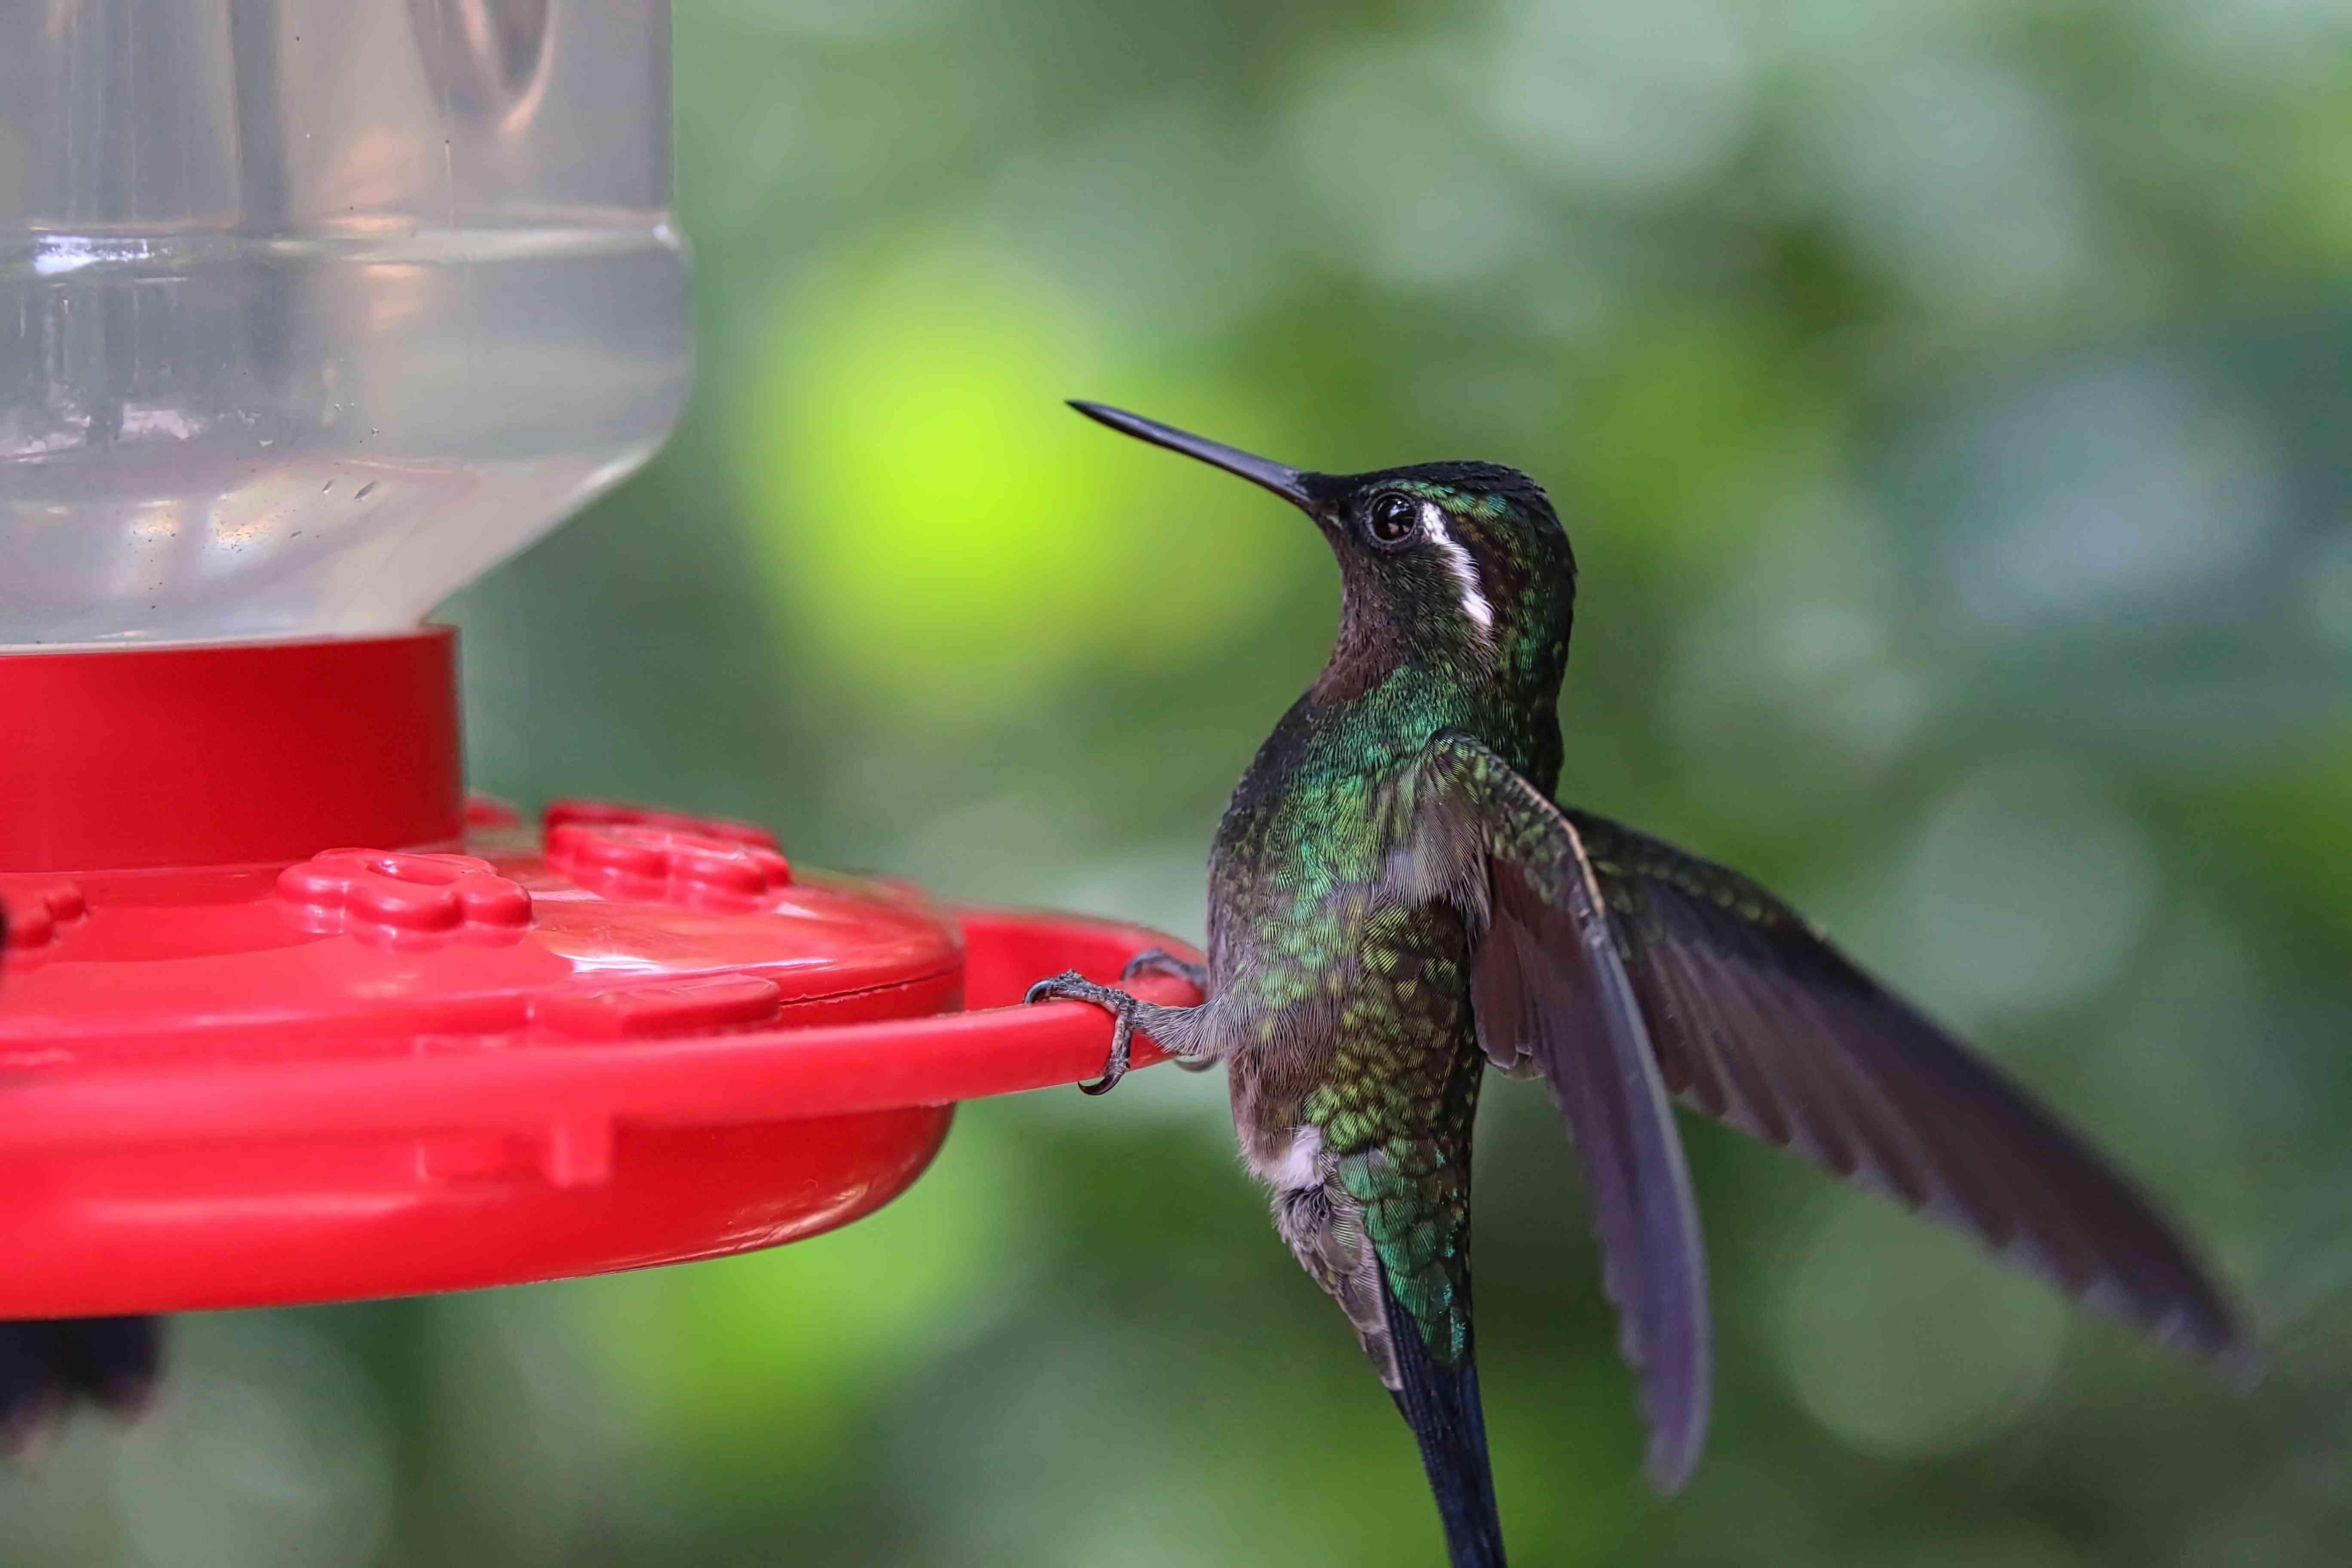 Green-crowned brilliant hummingbird perched on feeder